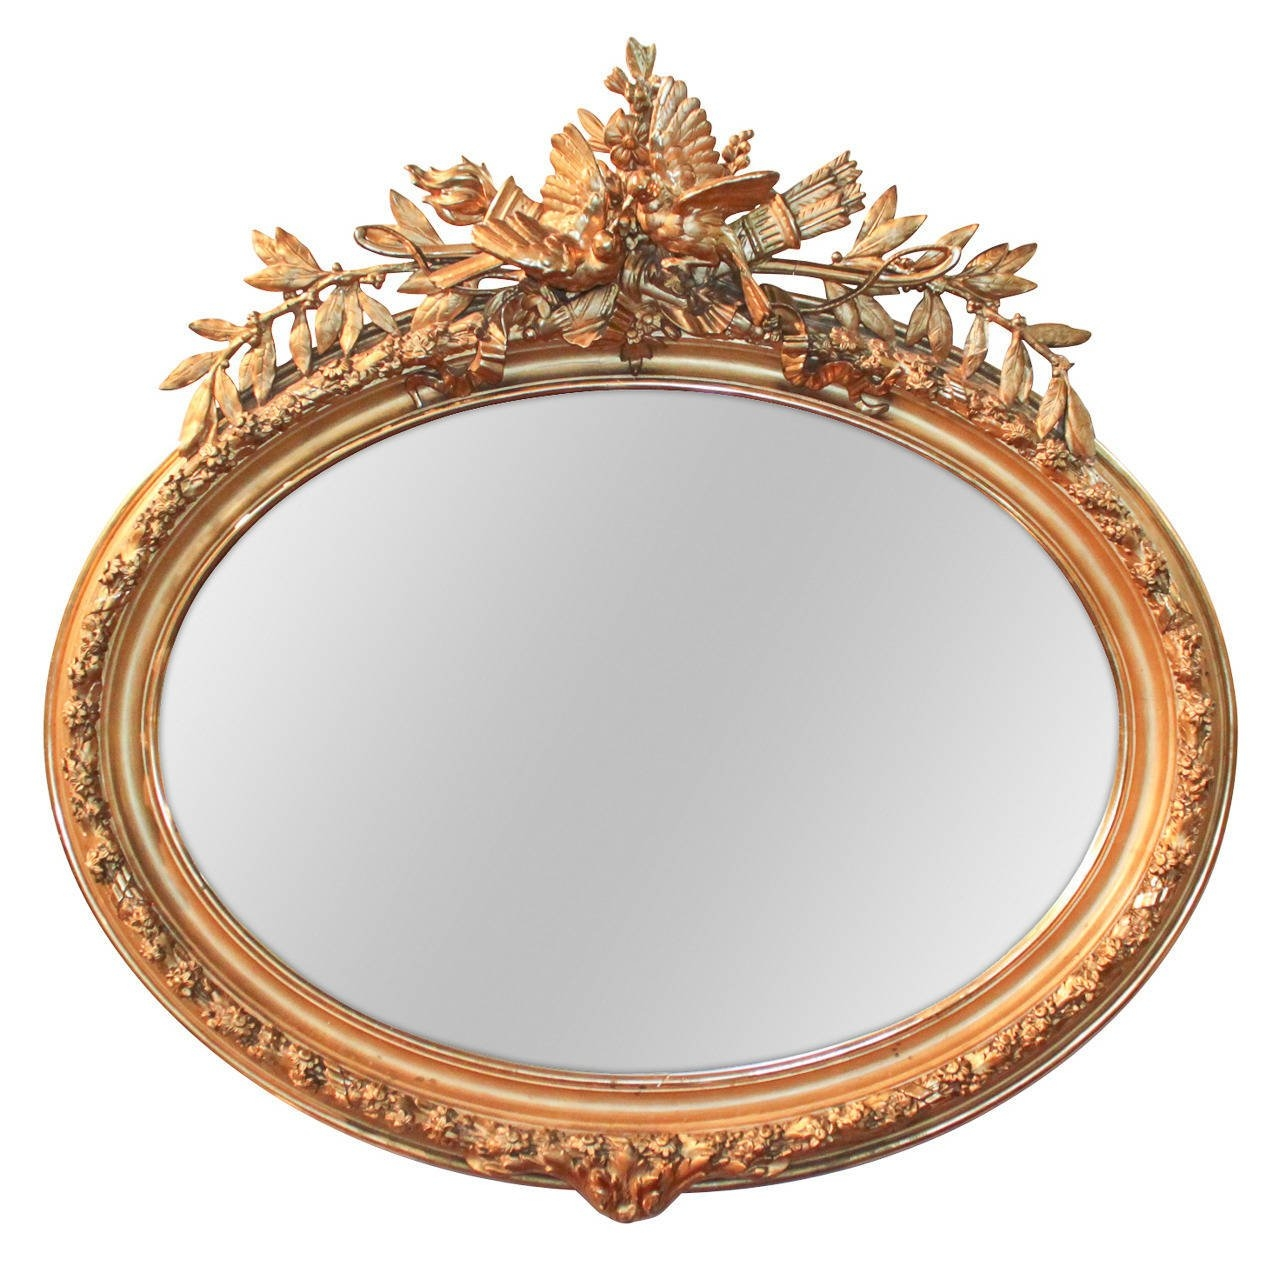 19th Century French Louis Xvi Oval Gilt Mirror For Sale At 1stdibs Inside Gilt Mirror (View 5 of 15)